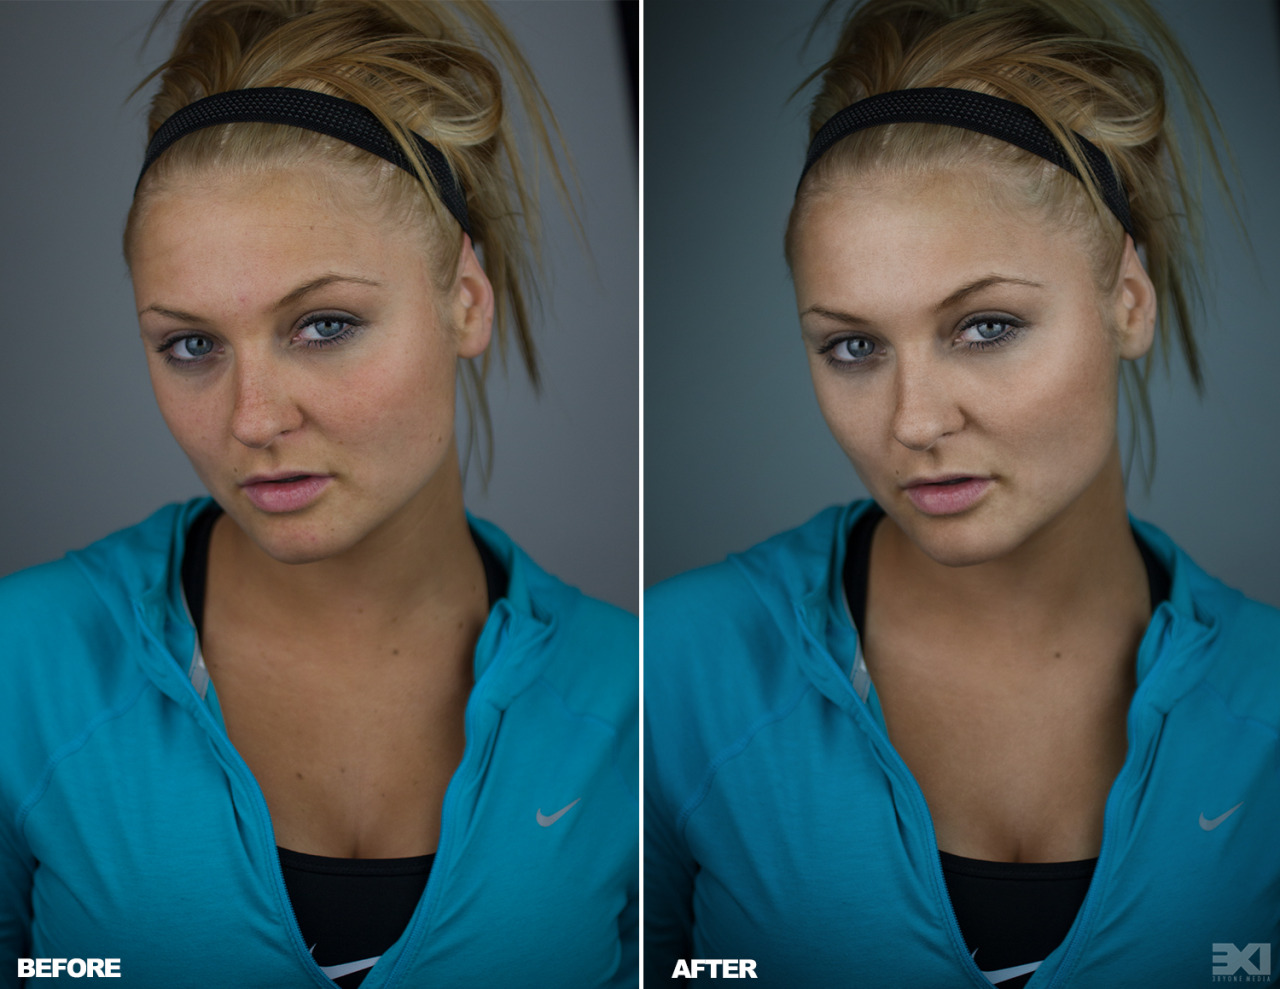 Before and After of new portrait shoot I did of my girlfriend thanks to Phlearn